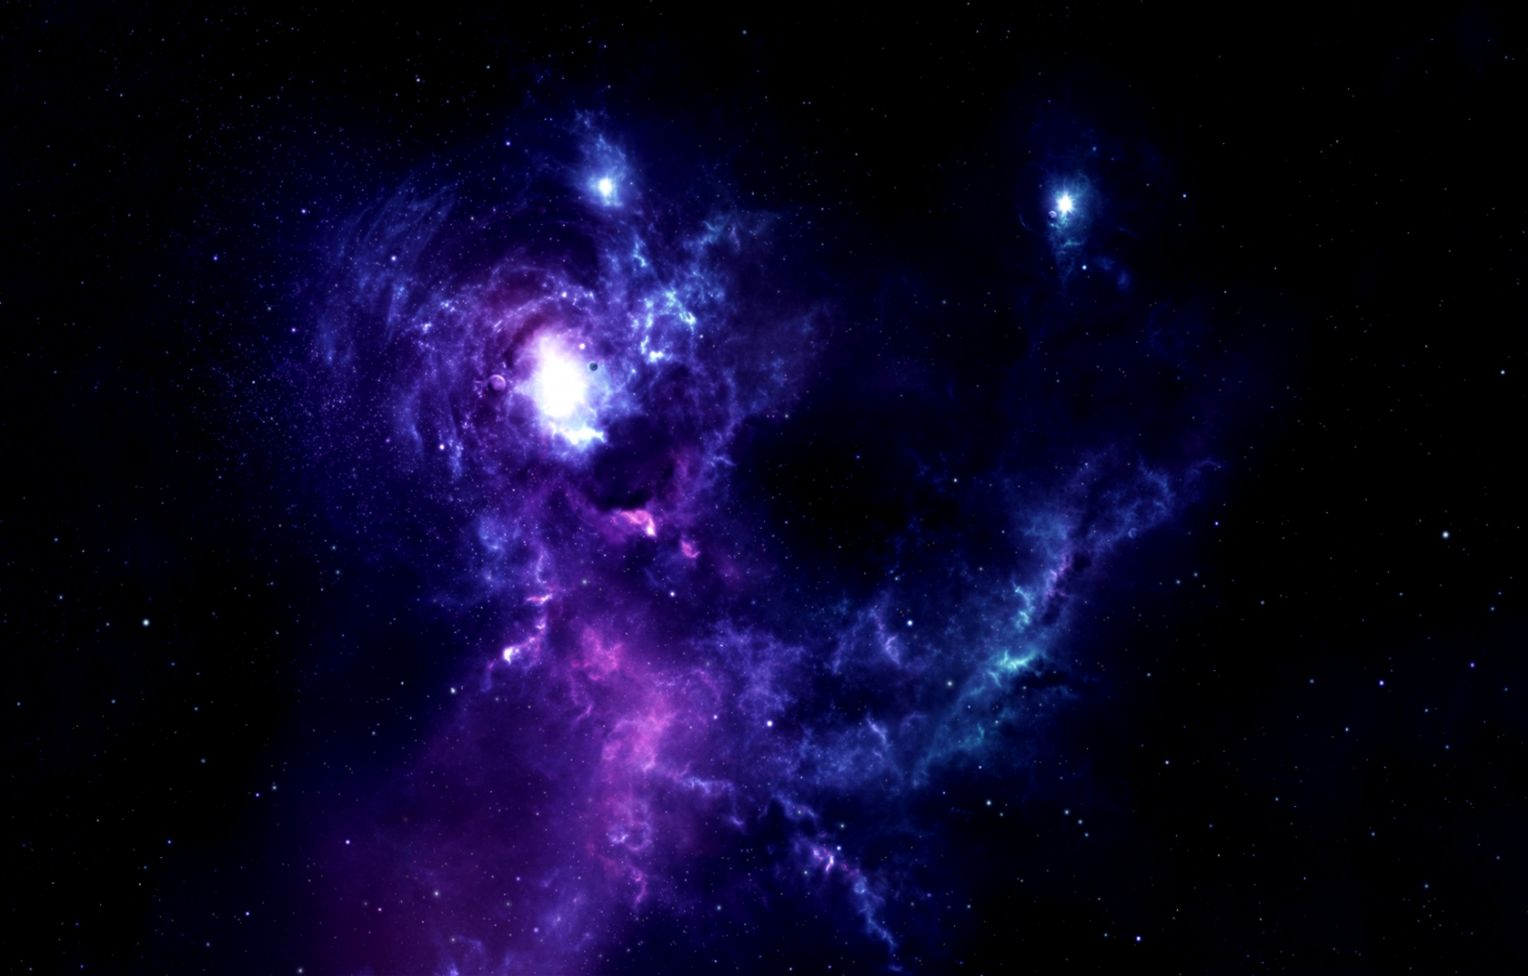 View Original Size 1280x800 Space Purple Blue Nebula Wallpaper Image Source From This